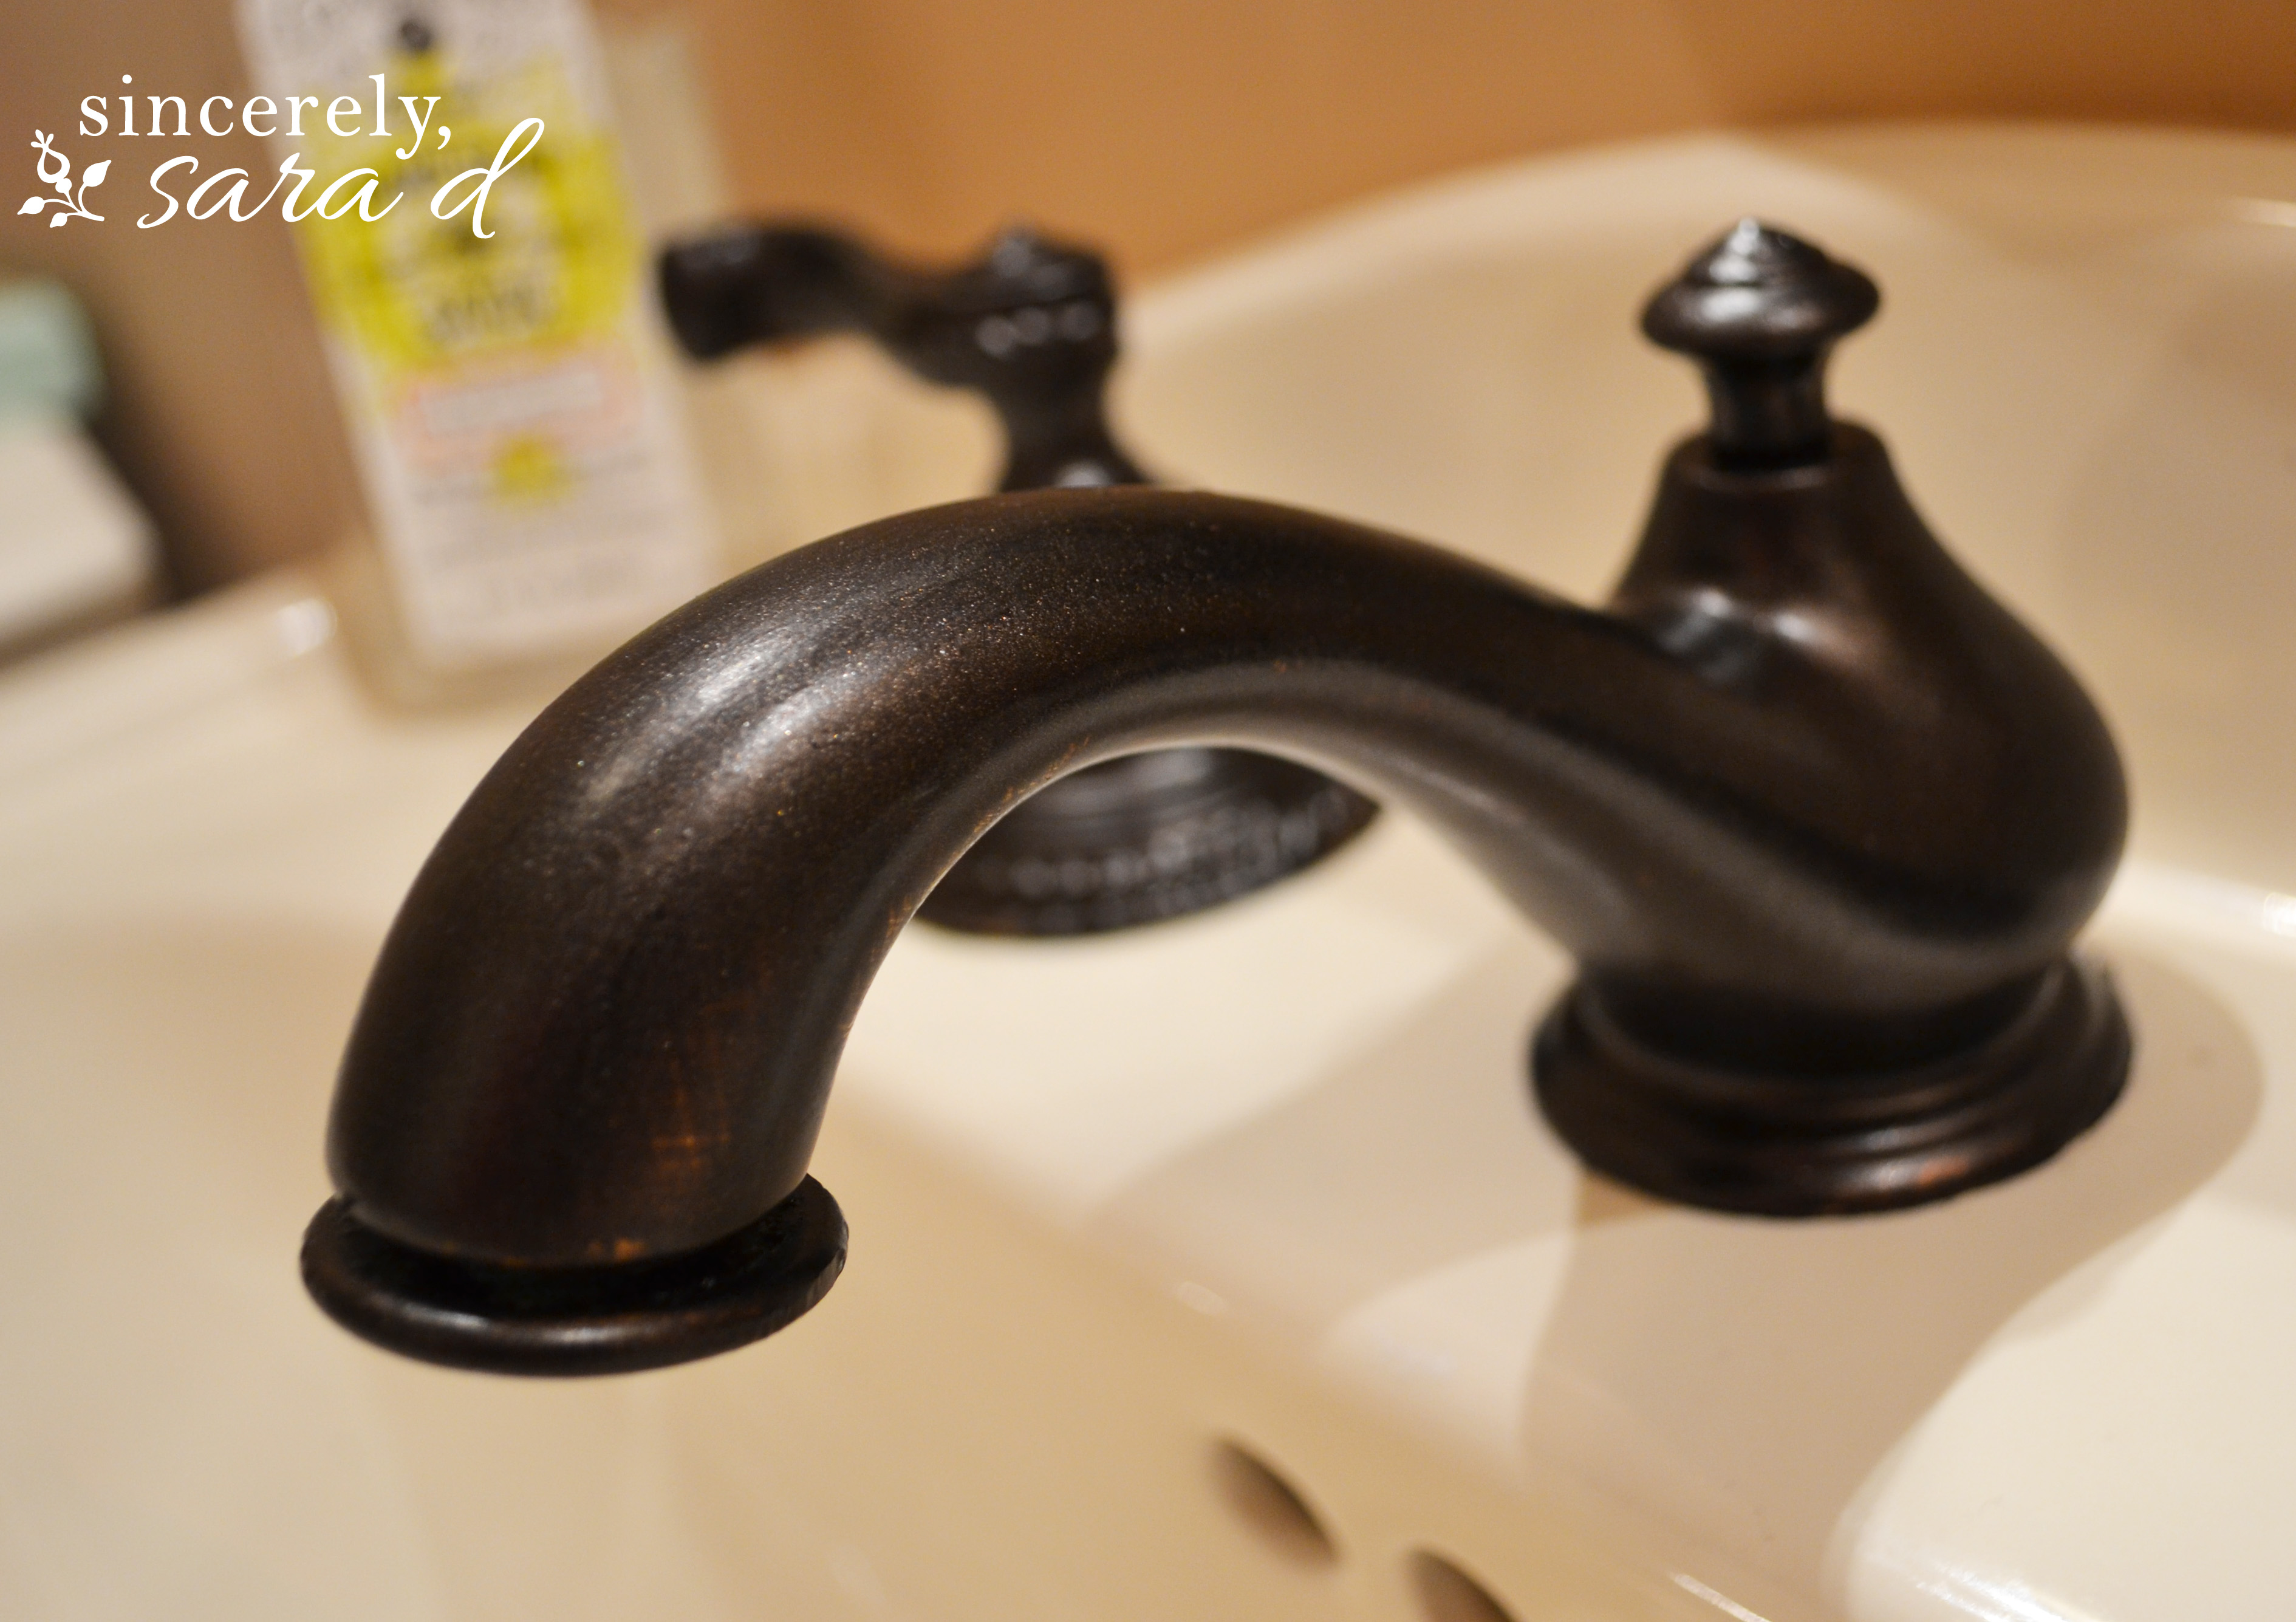 Painted Faucet Update – Over Two Years Later